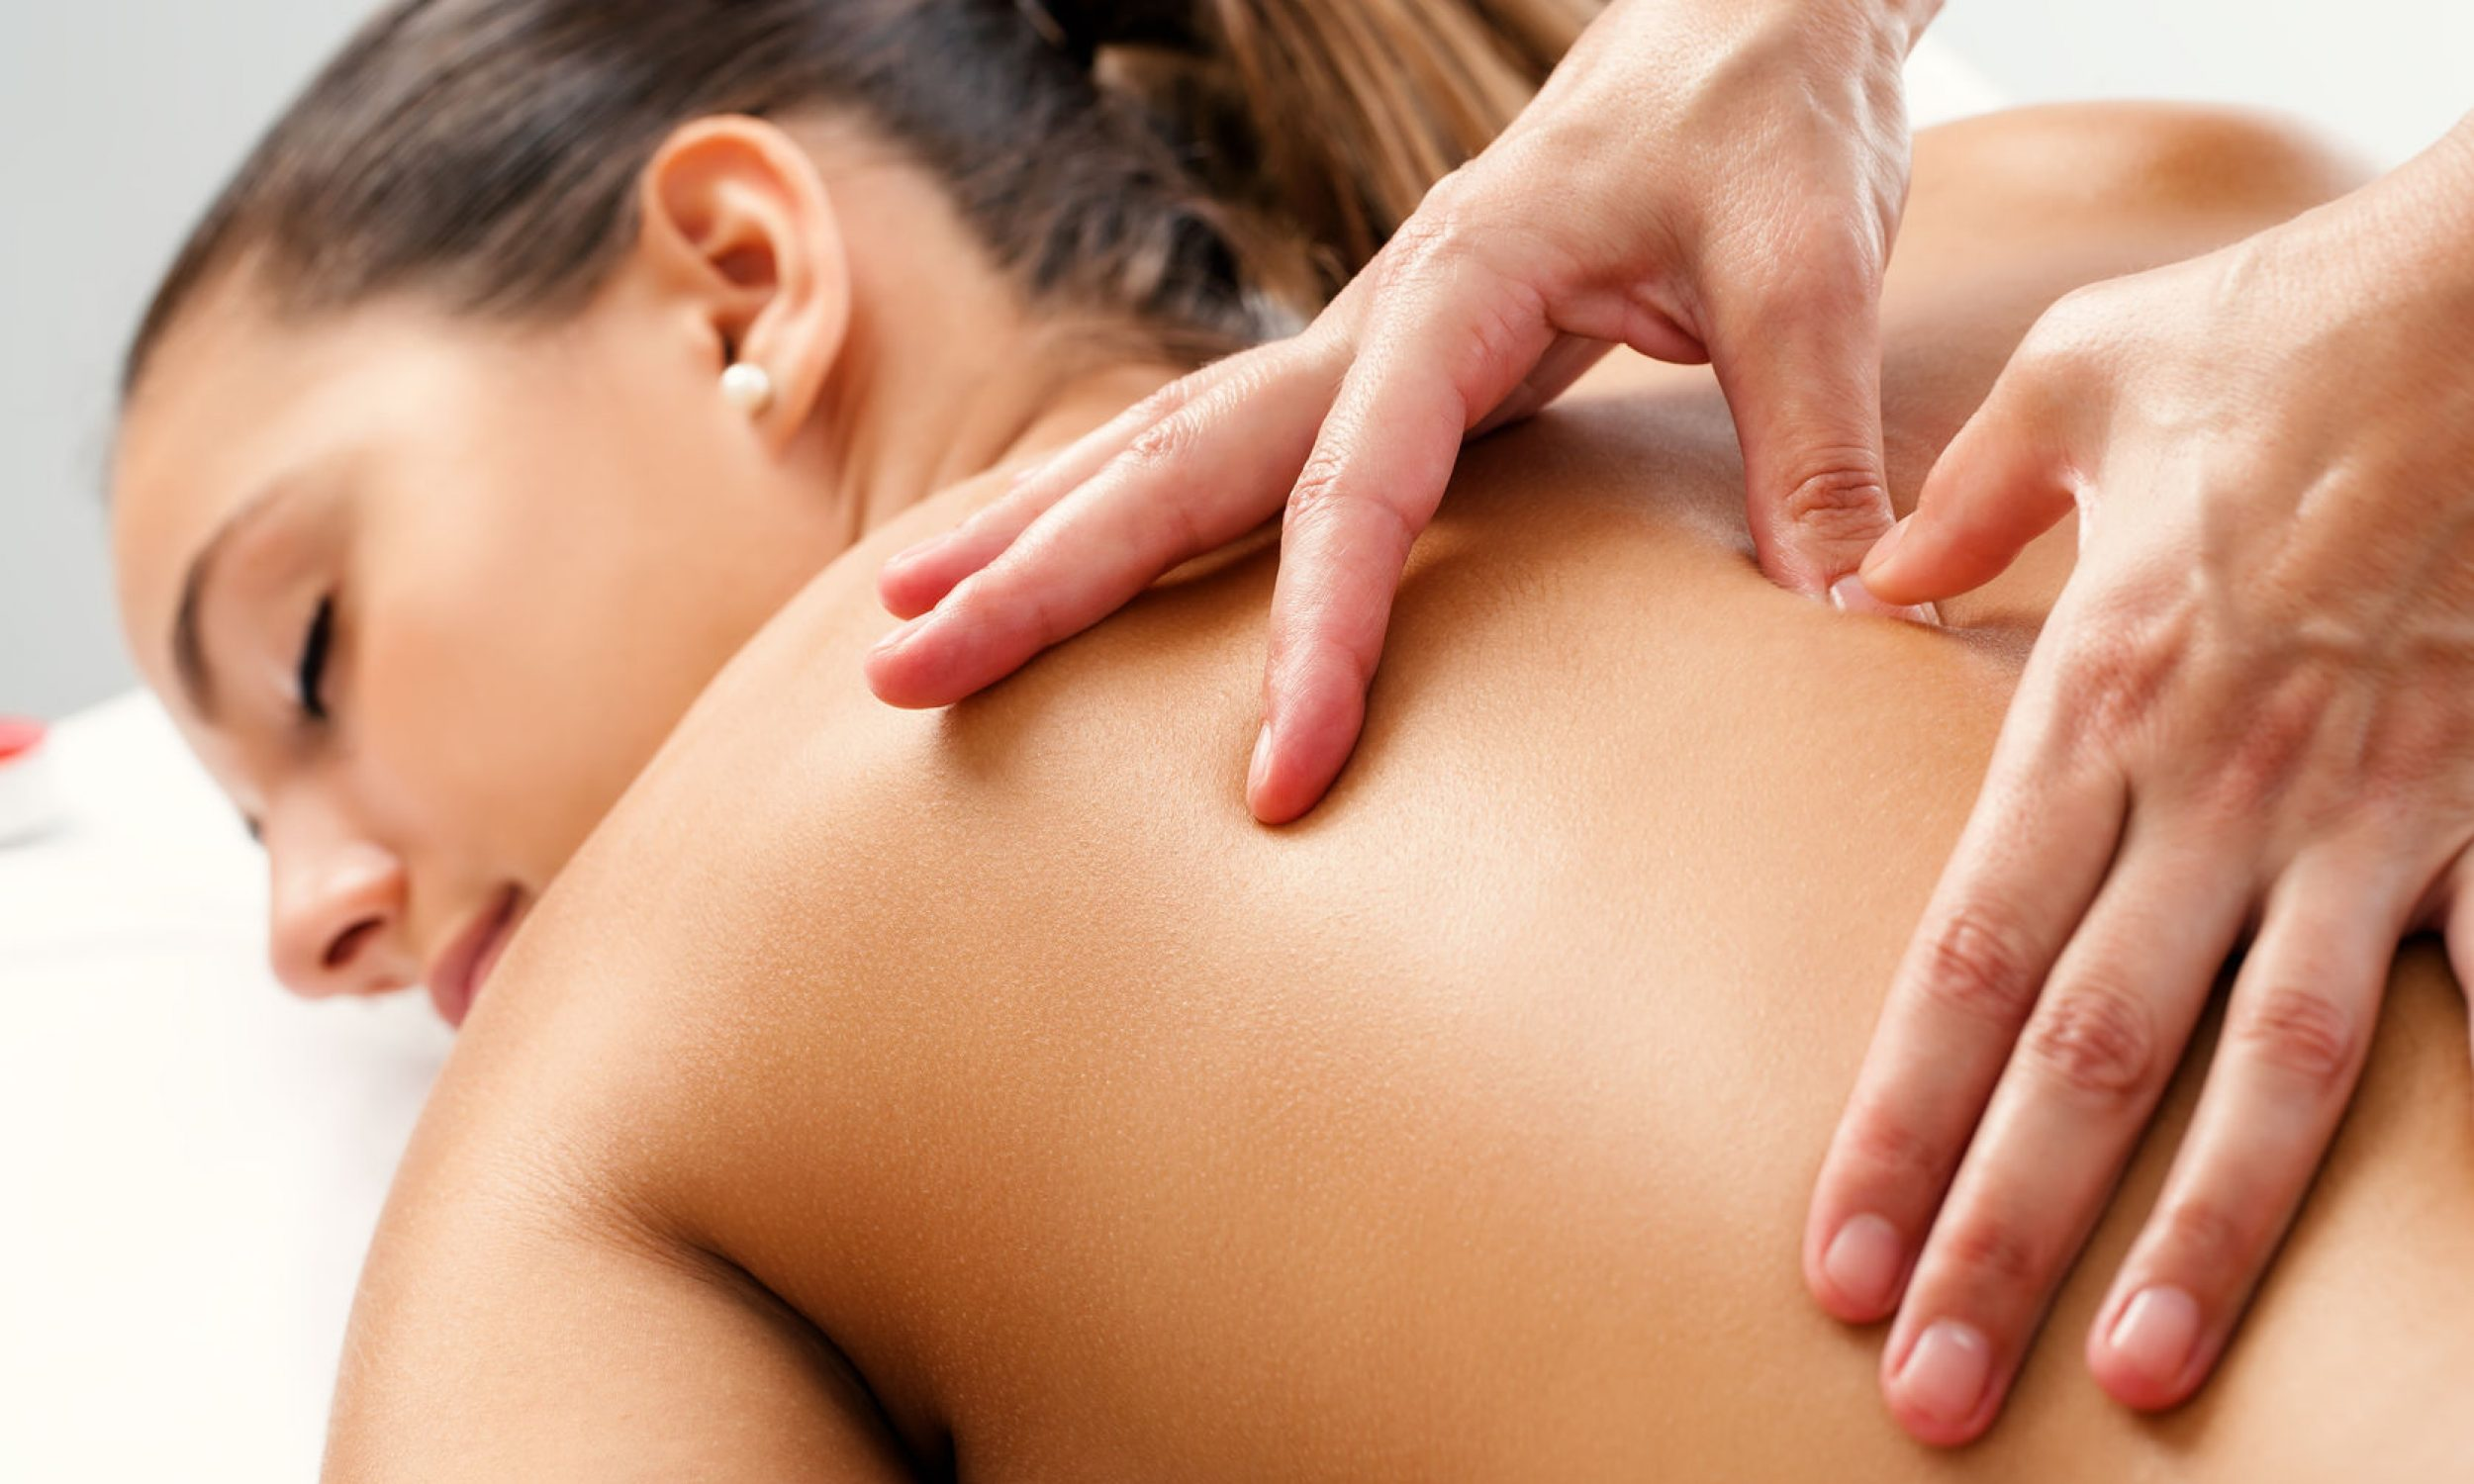 45232073 - close up of therapist doing curative healing massage with thumbs on female back.